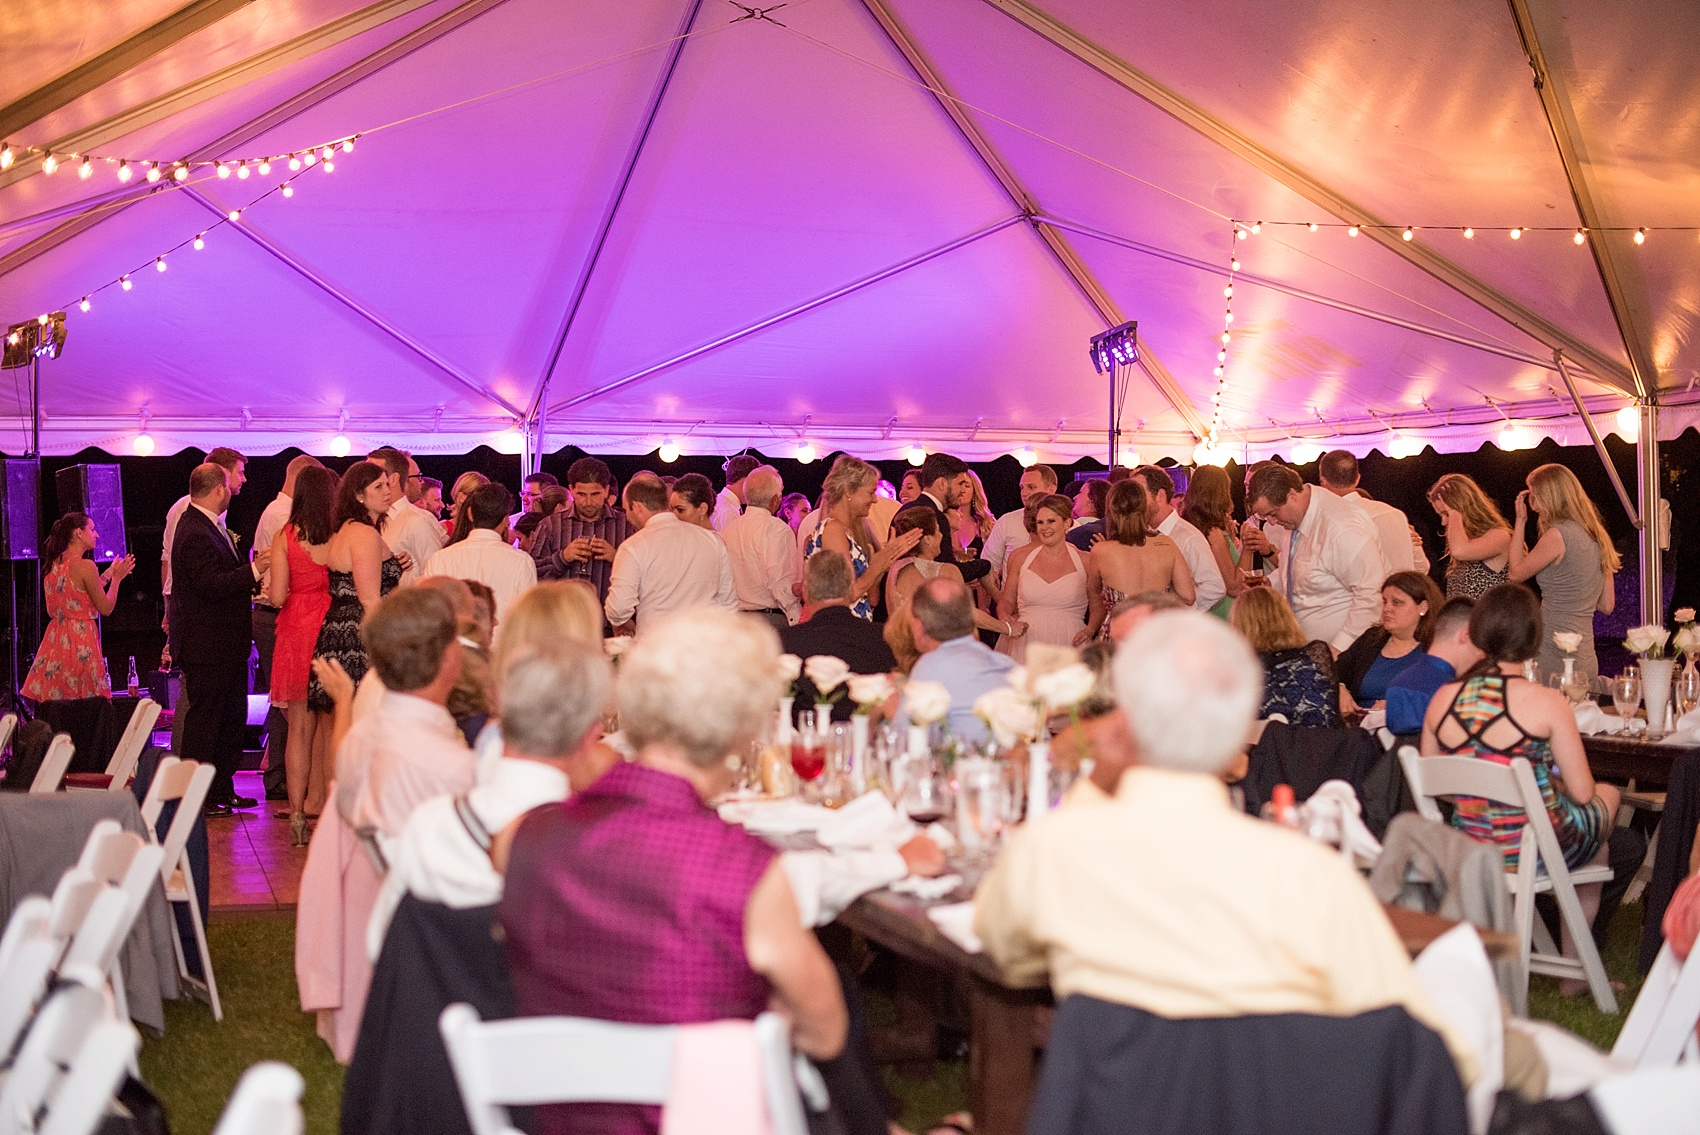 Tented southern wedding reception at Haig Point in South Carolina, off the coast of Hilton Head. Photos by Mikkel Paige Photography.